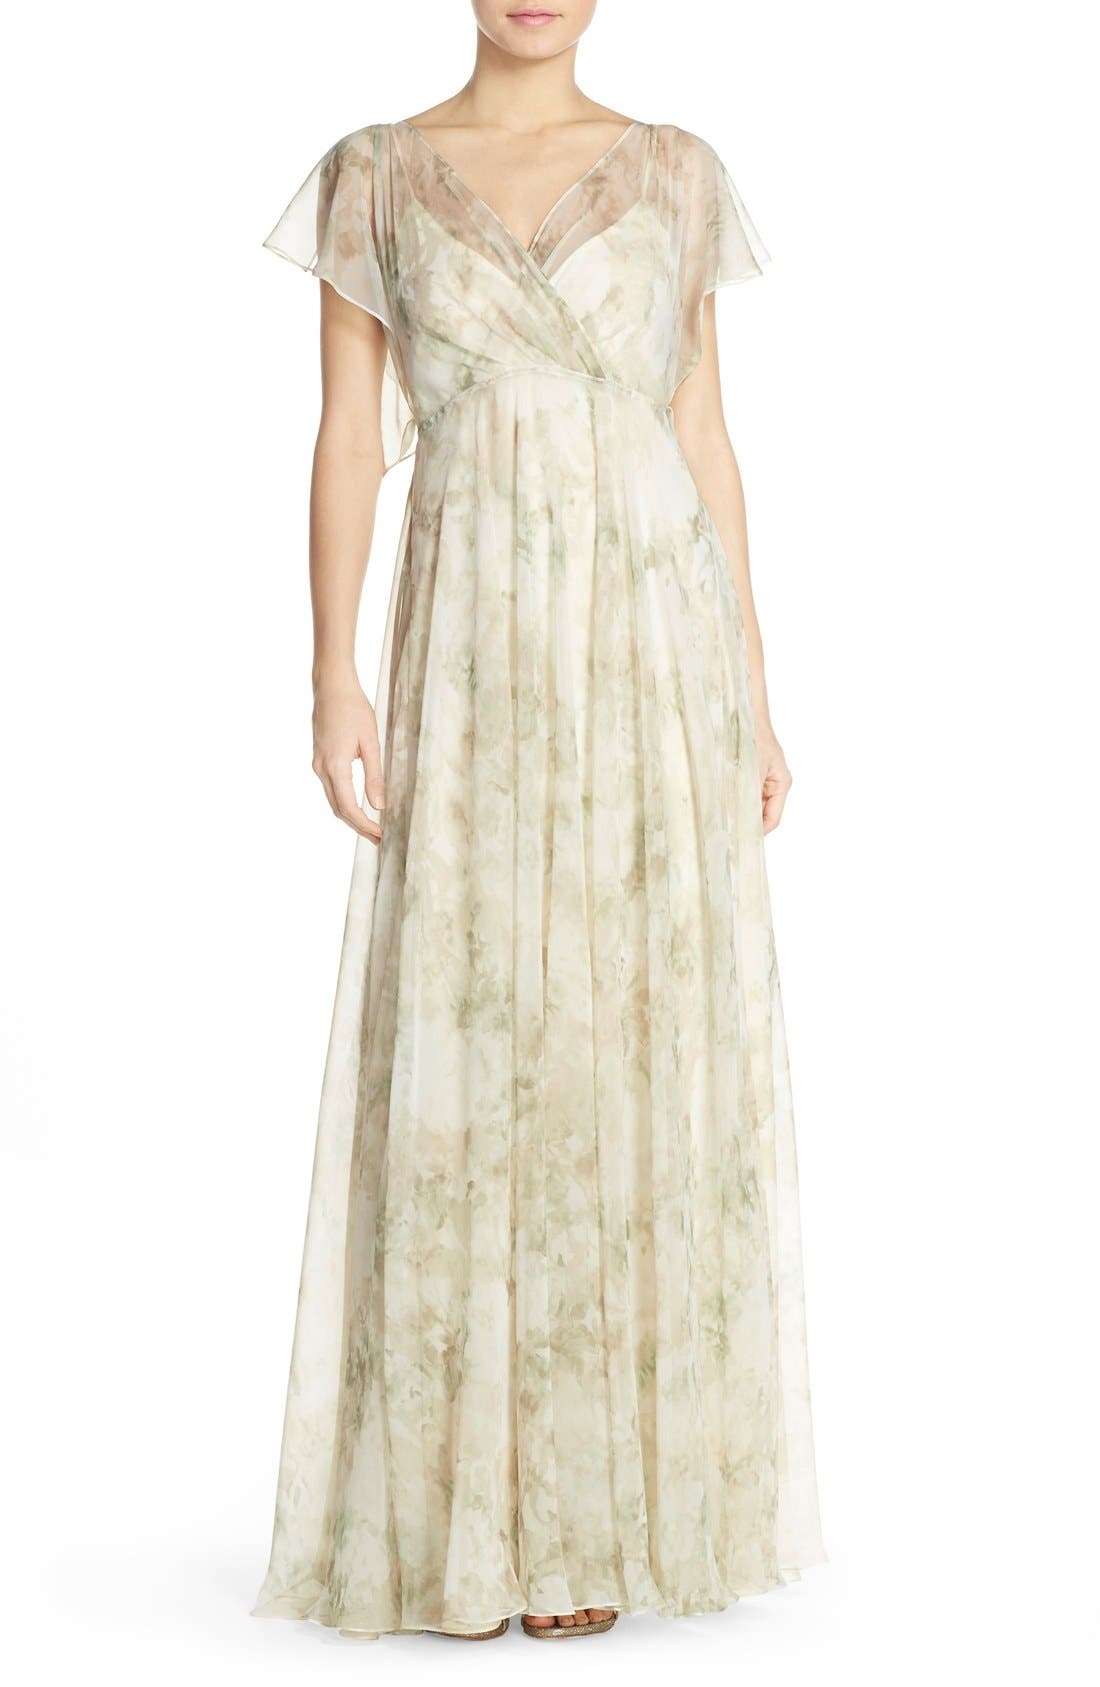 Alternate Image 1 Selected - Jenny Yoo 'Cassie' Print Flutter Sleeve Chiffon Maxi Dress